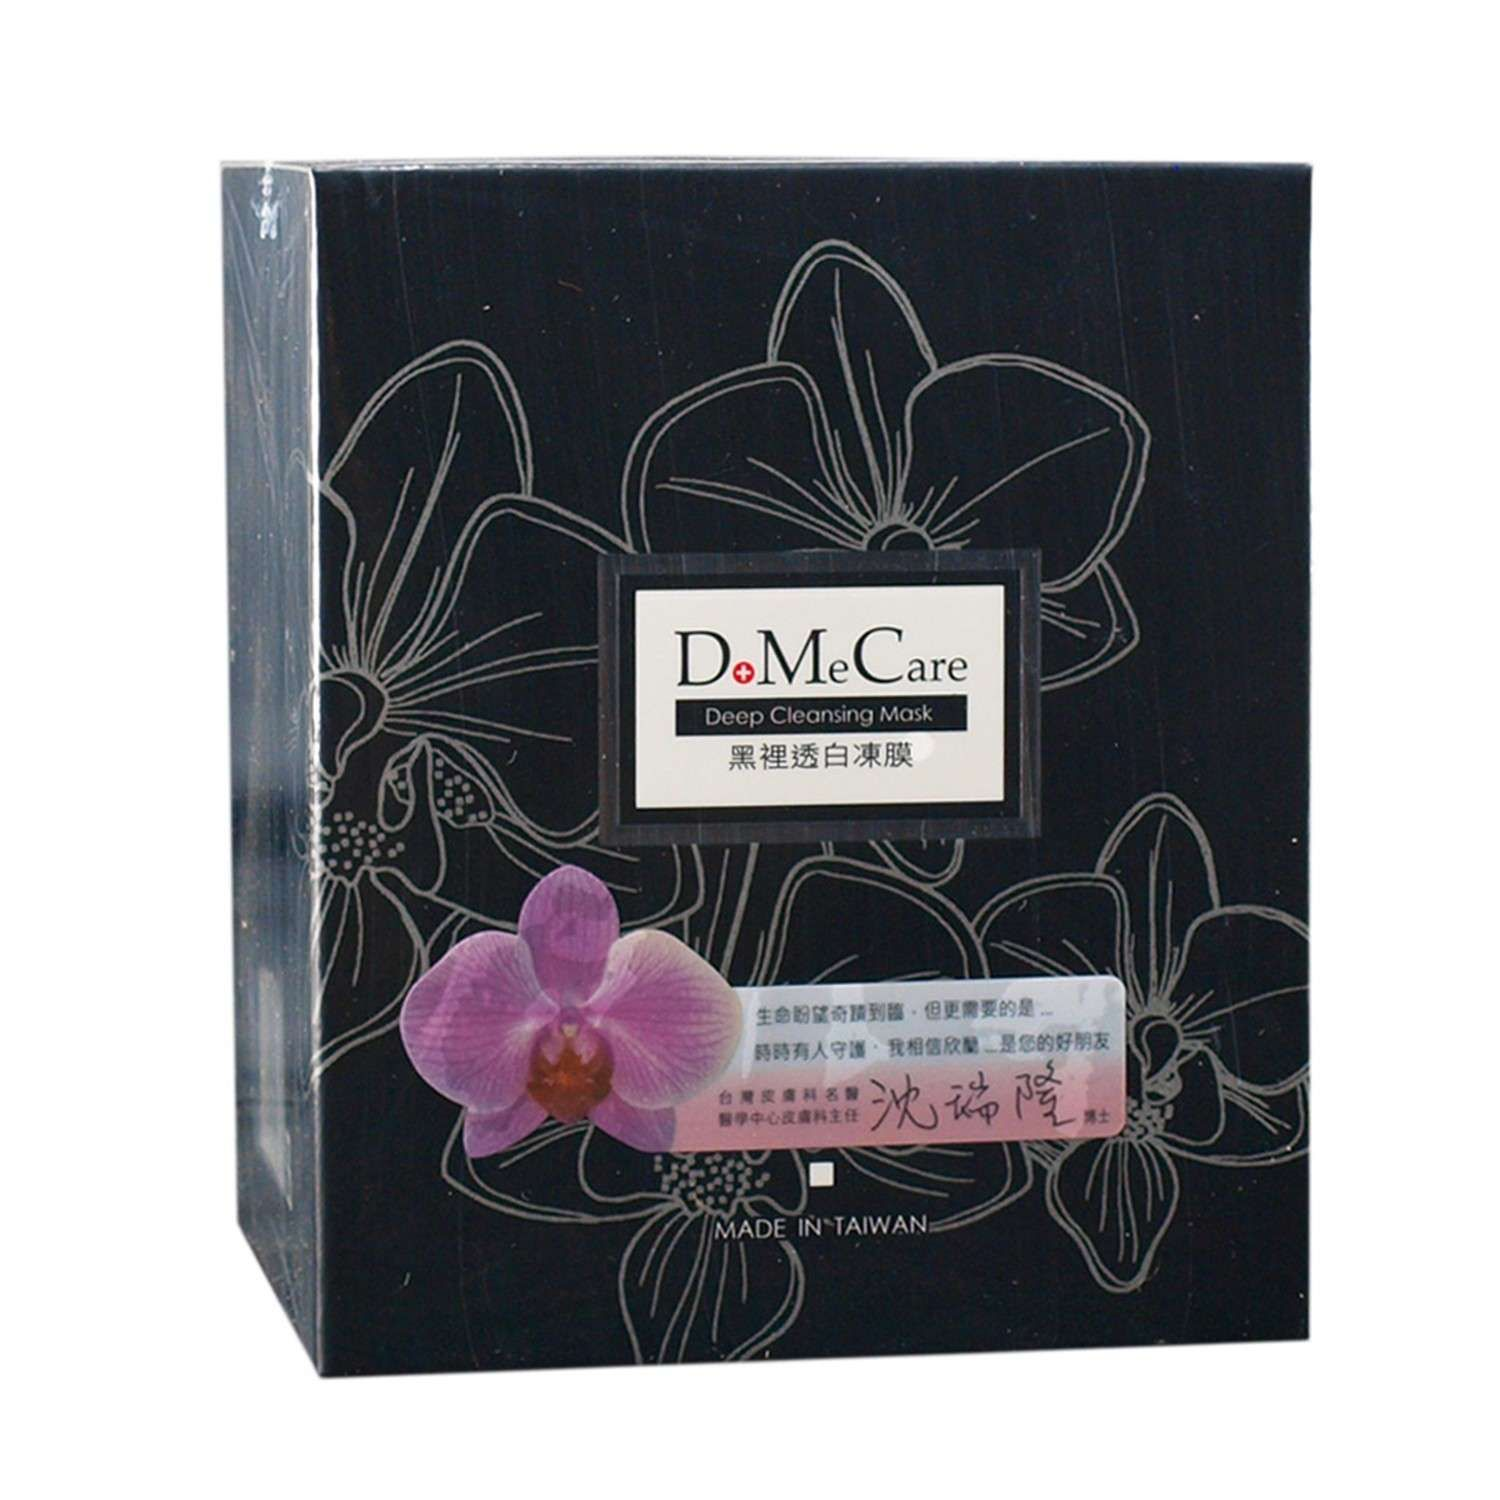 DMC(do me care) Deep Cleansing Mask (500 g)